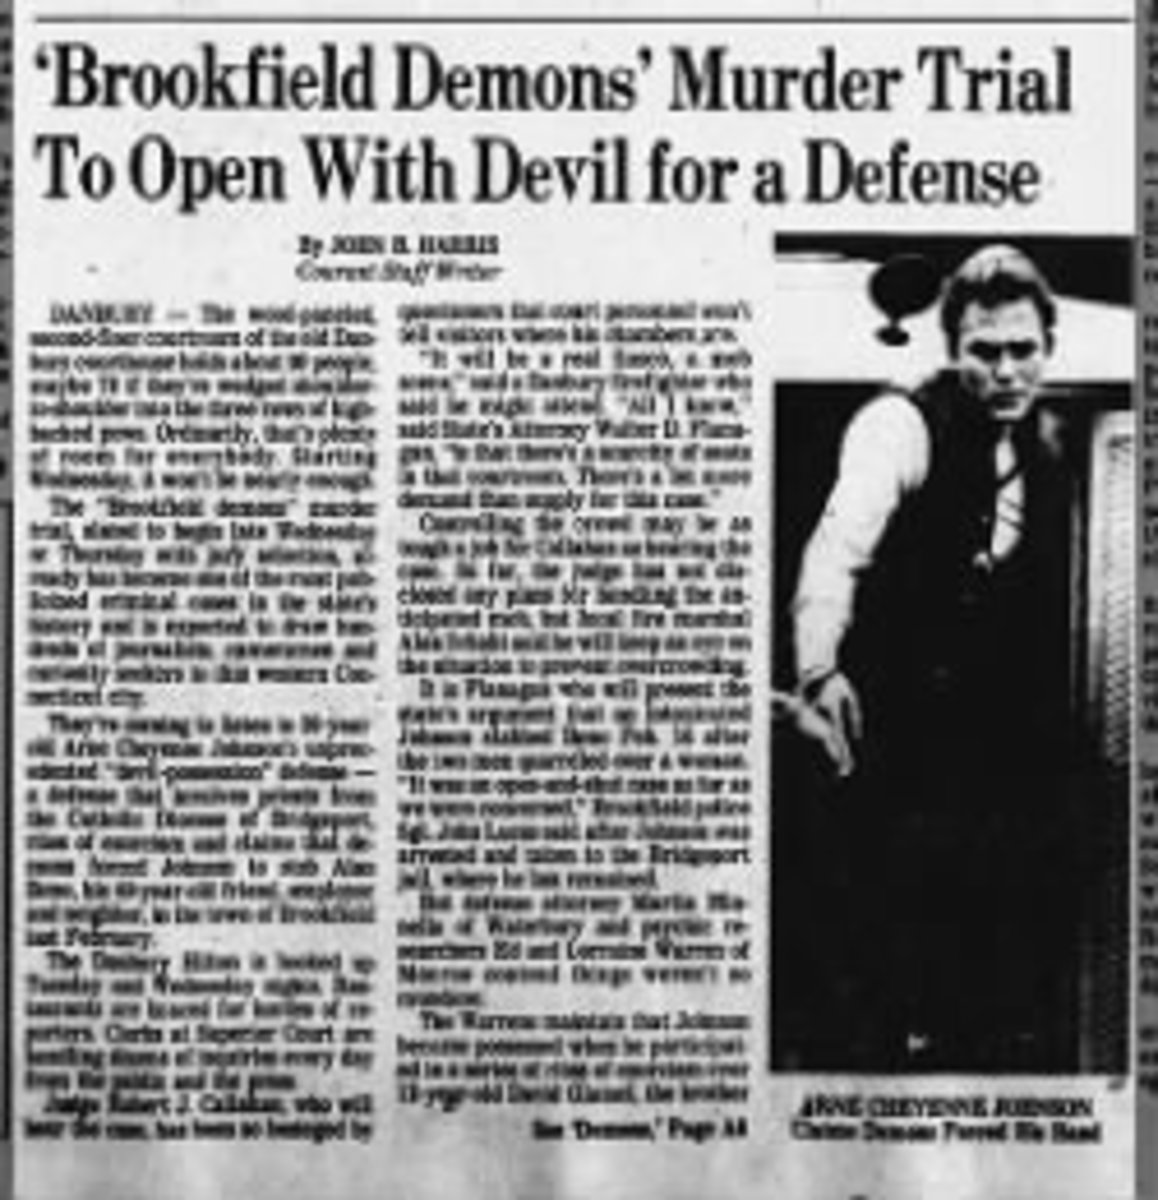 Newspaper clipping from the Hartford Courant